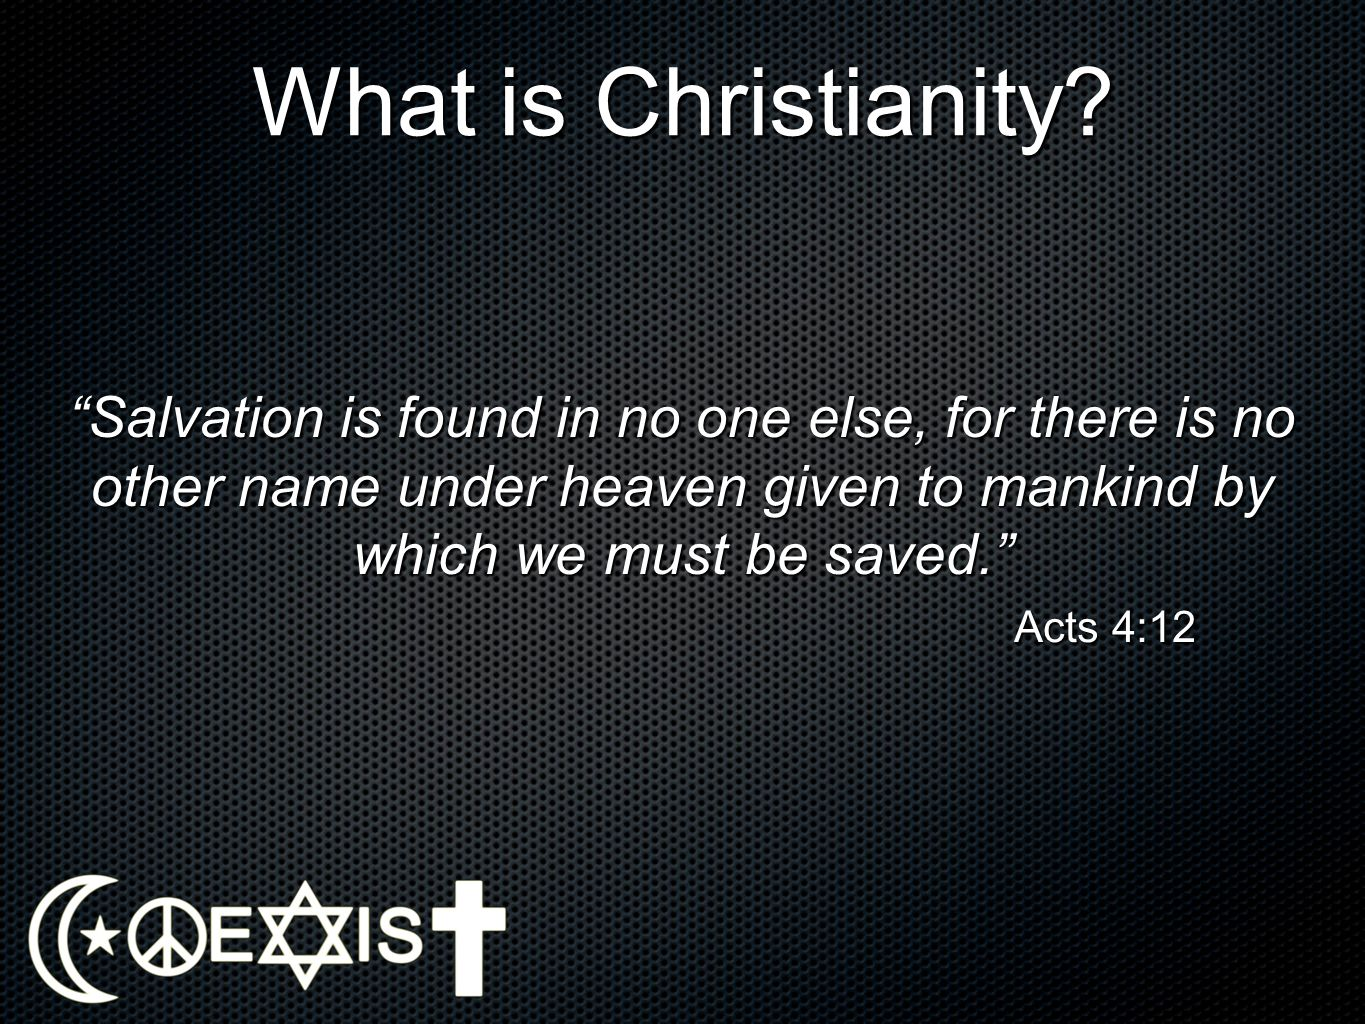 What is Christianity Salvation is found in no one else, for there is no other name under heaven given to mankind by which we must be saved.